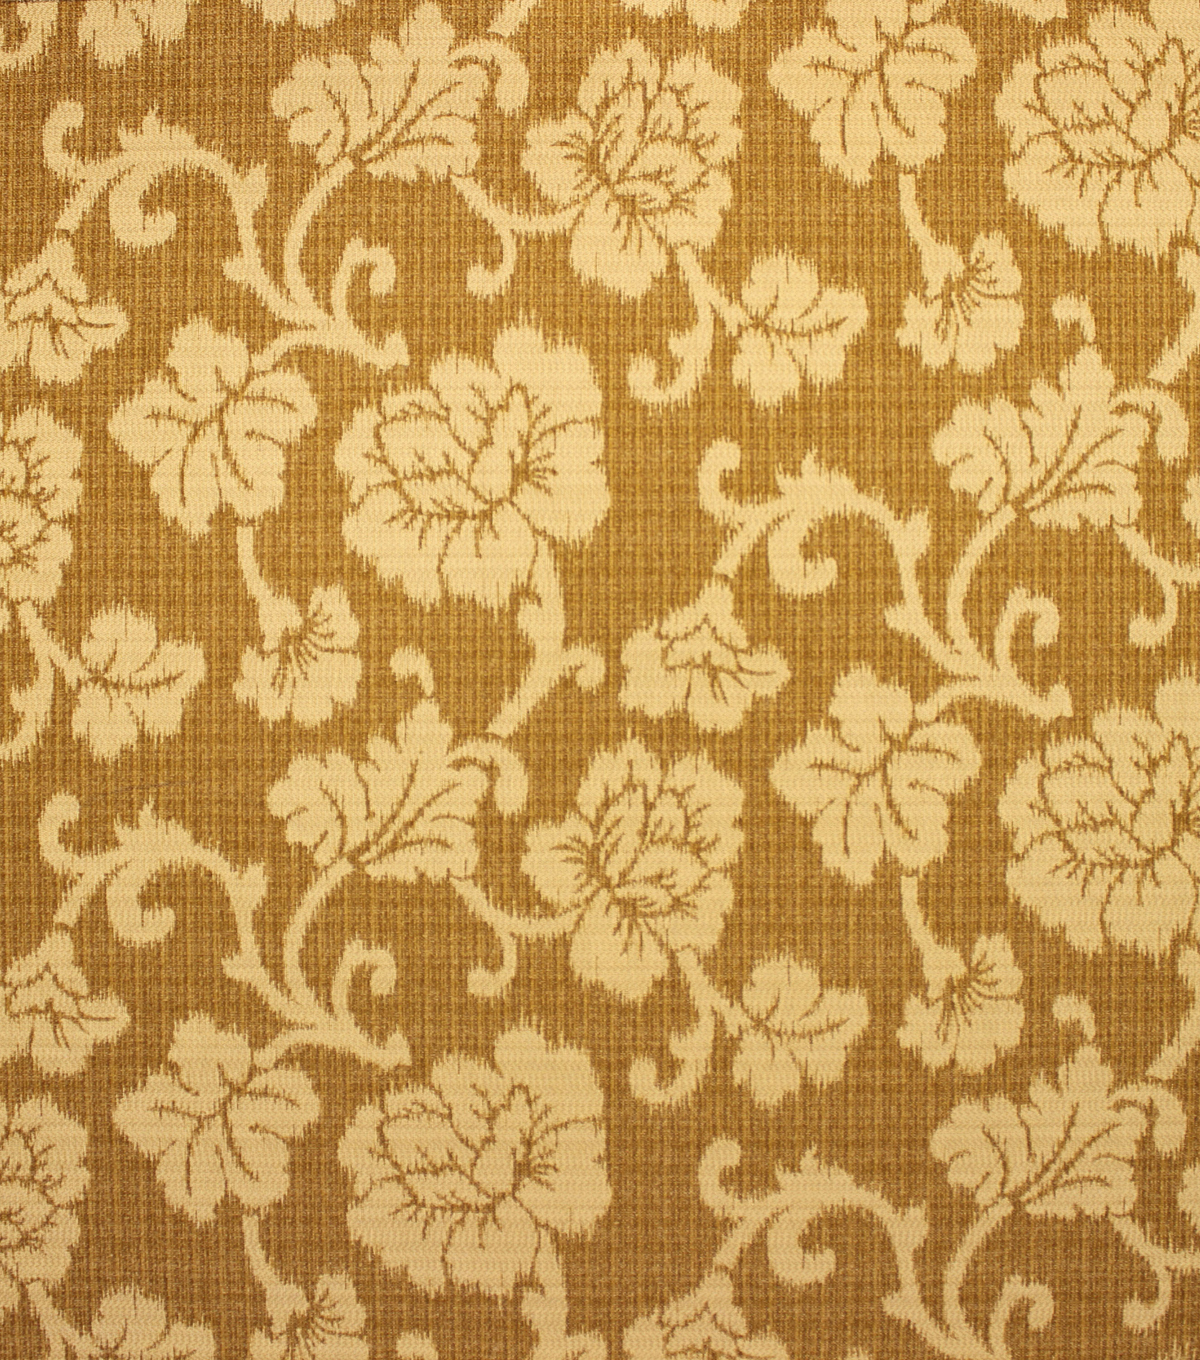 Home Decor 8\u0022x8\u0022 Fabric Swatch-Upholstery Fabric Barrow M8530-5883 Birch